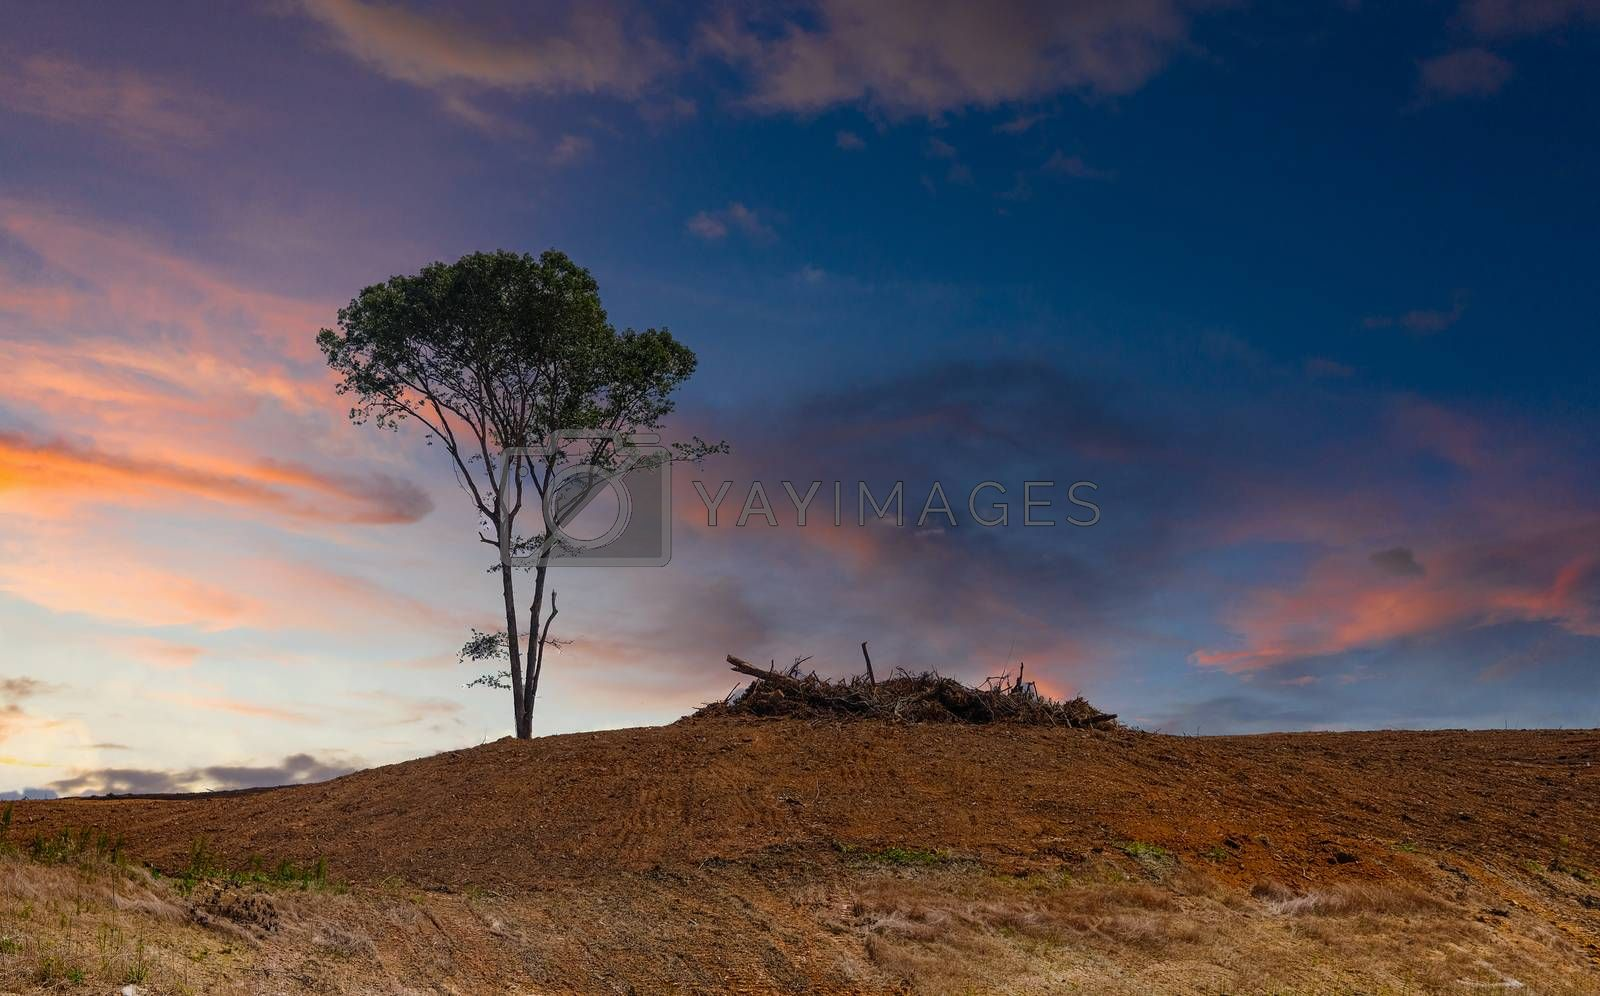 Lone Tree on a Bare Hill at a Construction Site at Dusk